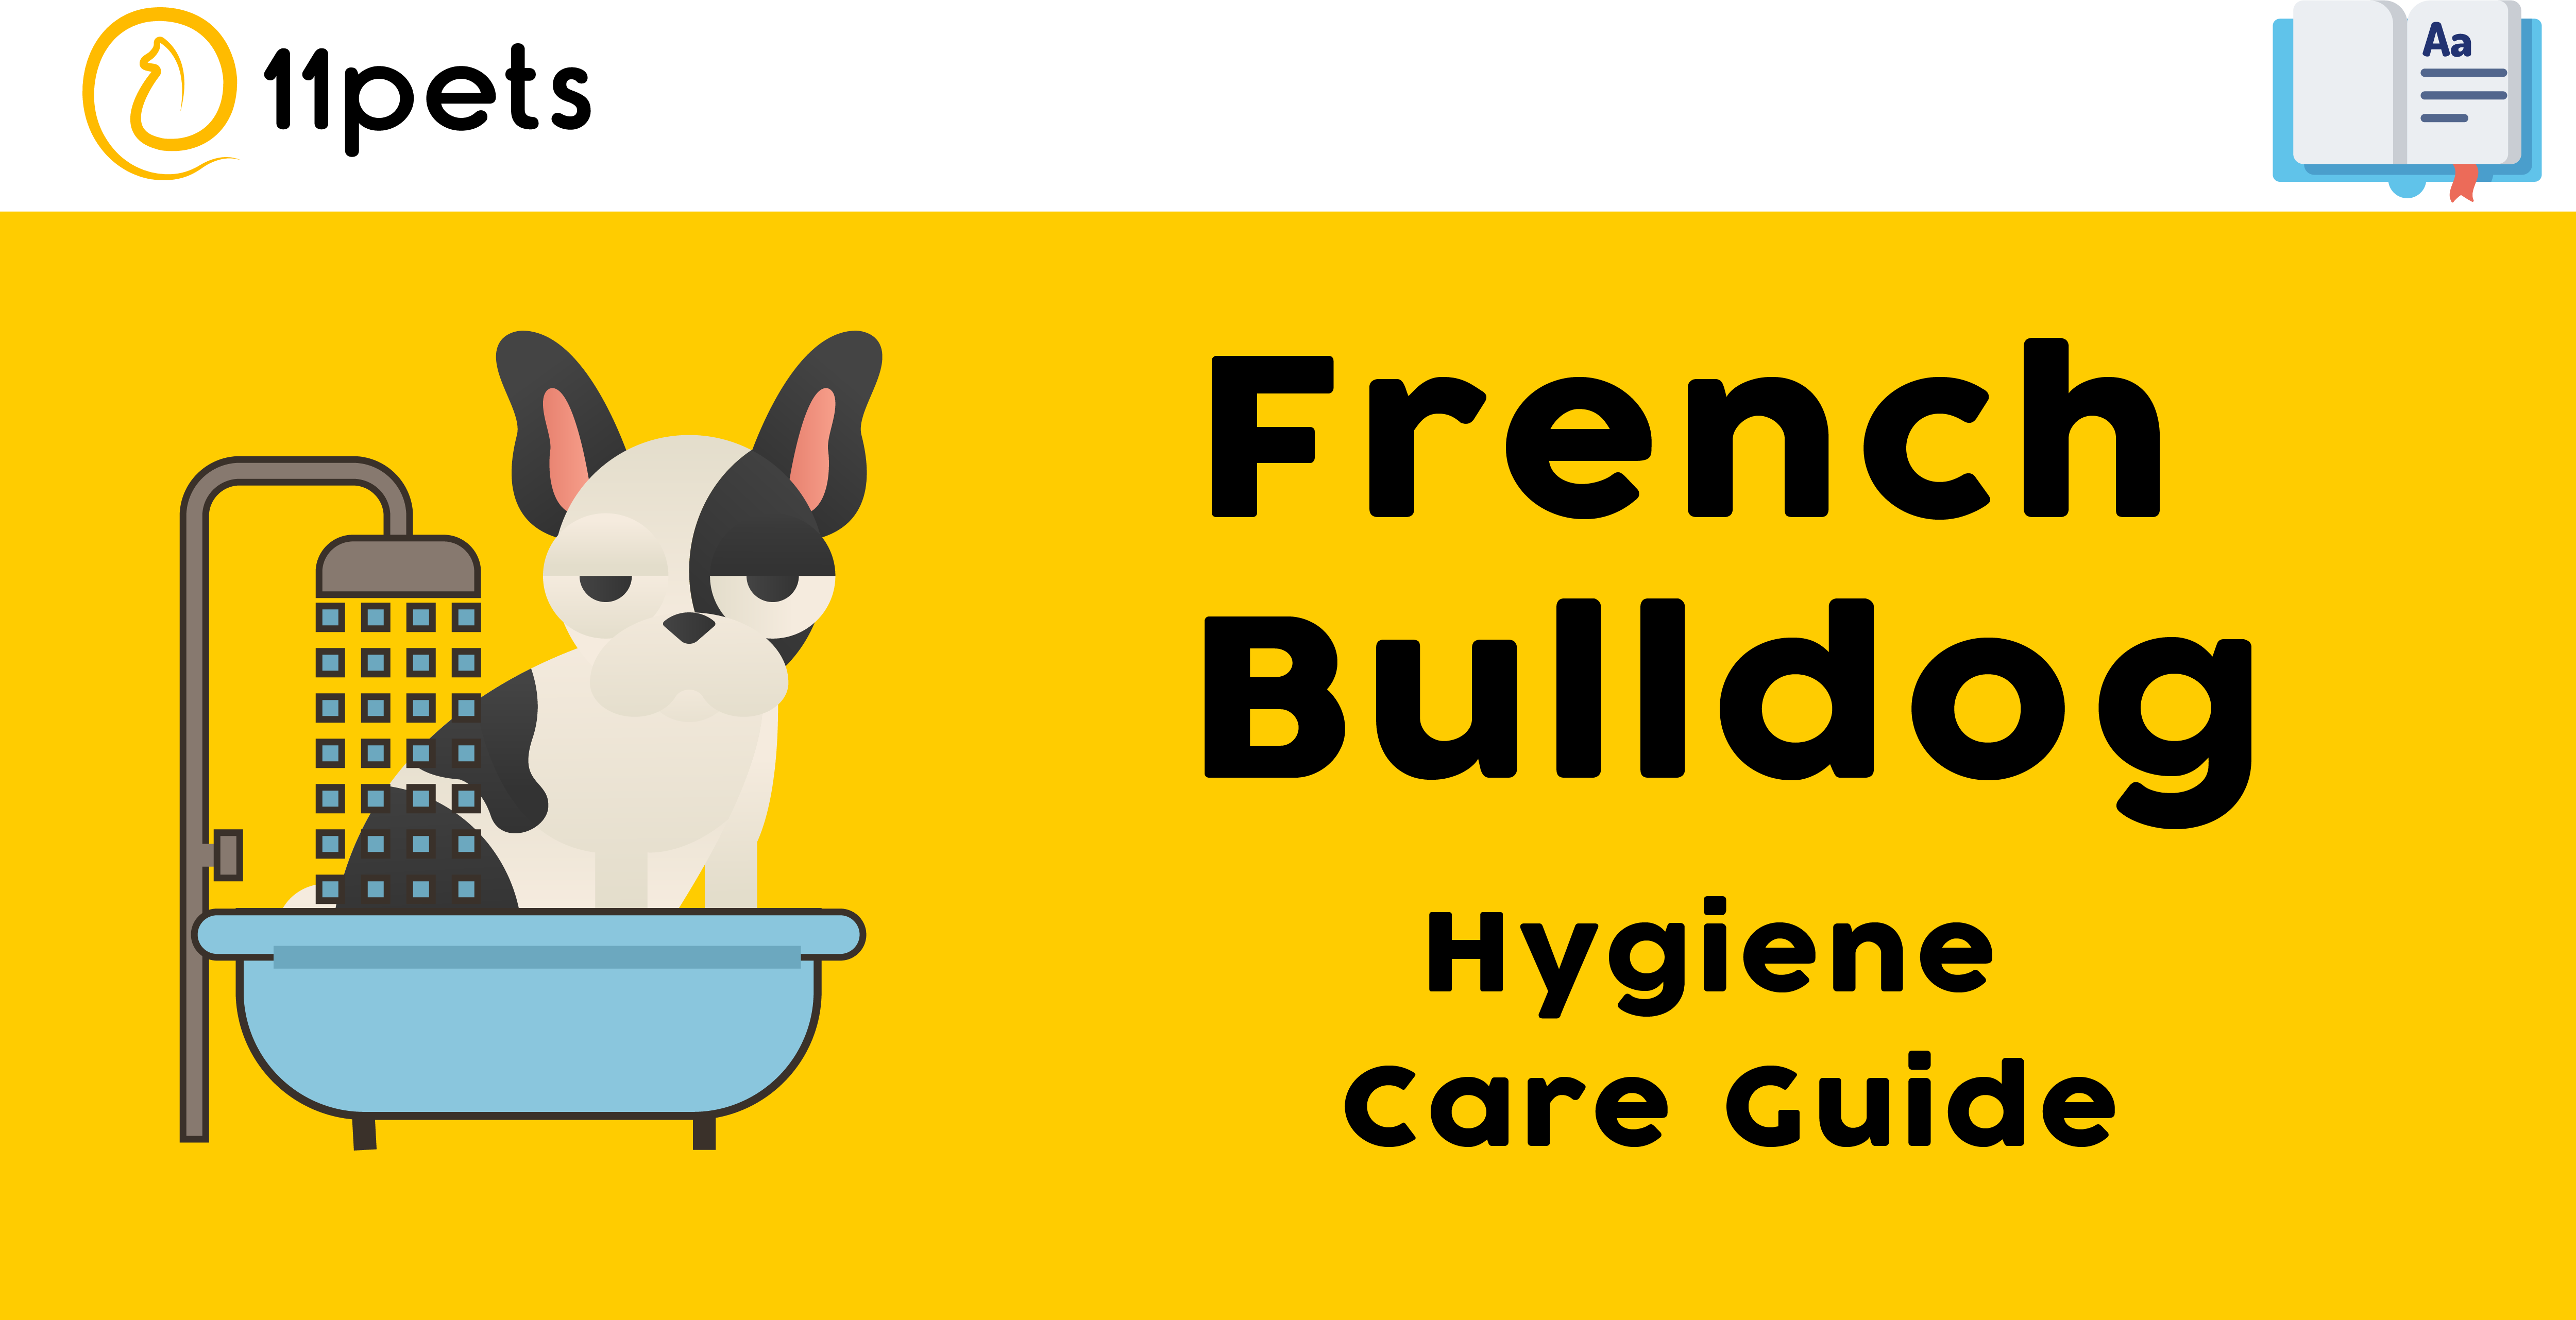 Hygiene Care Guide for French Bulldog